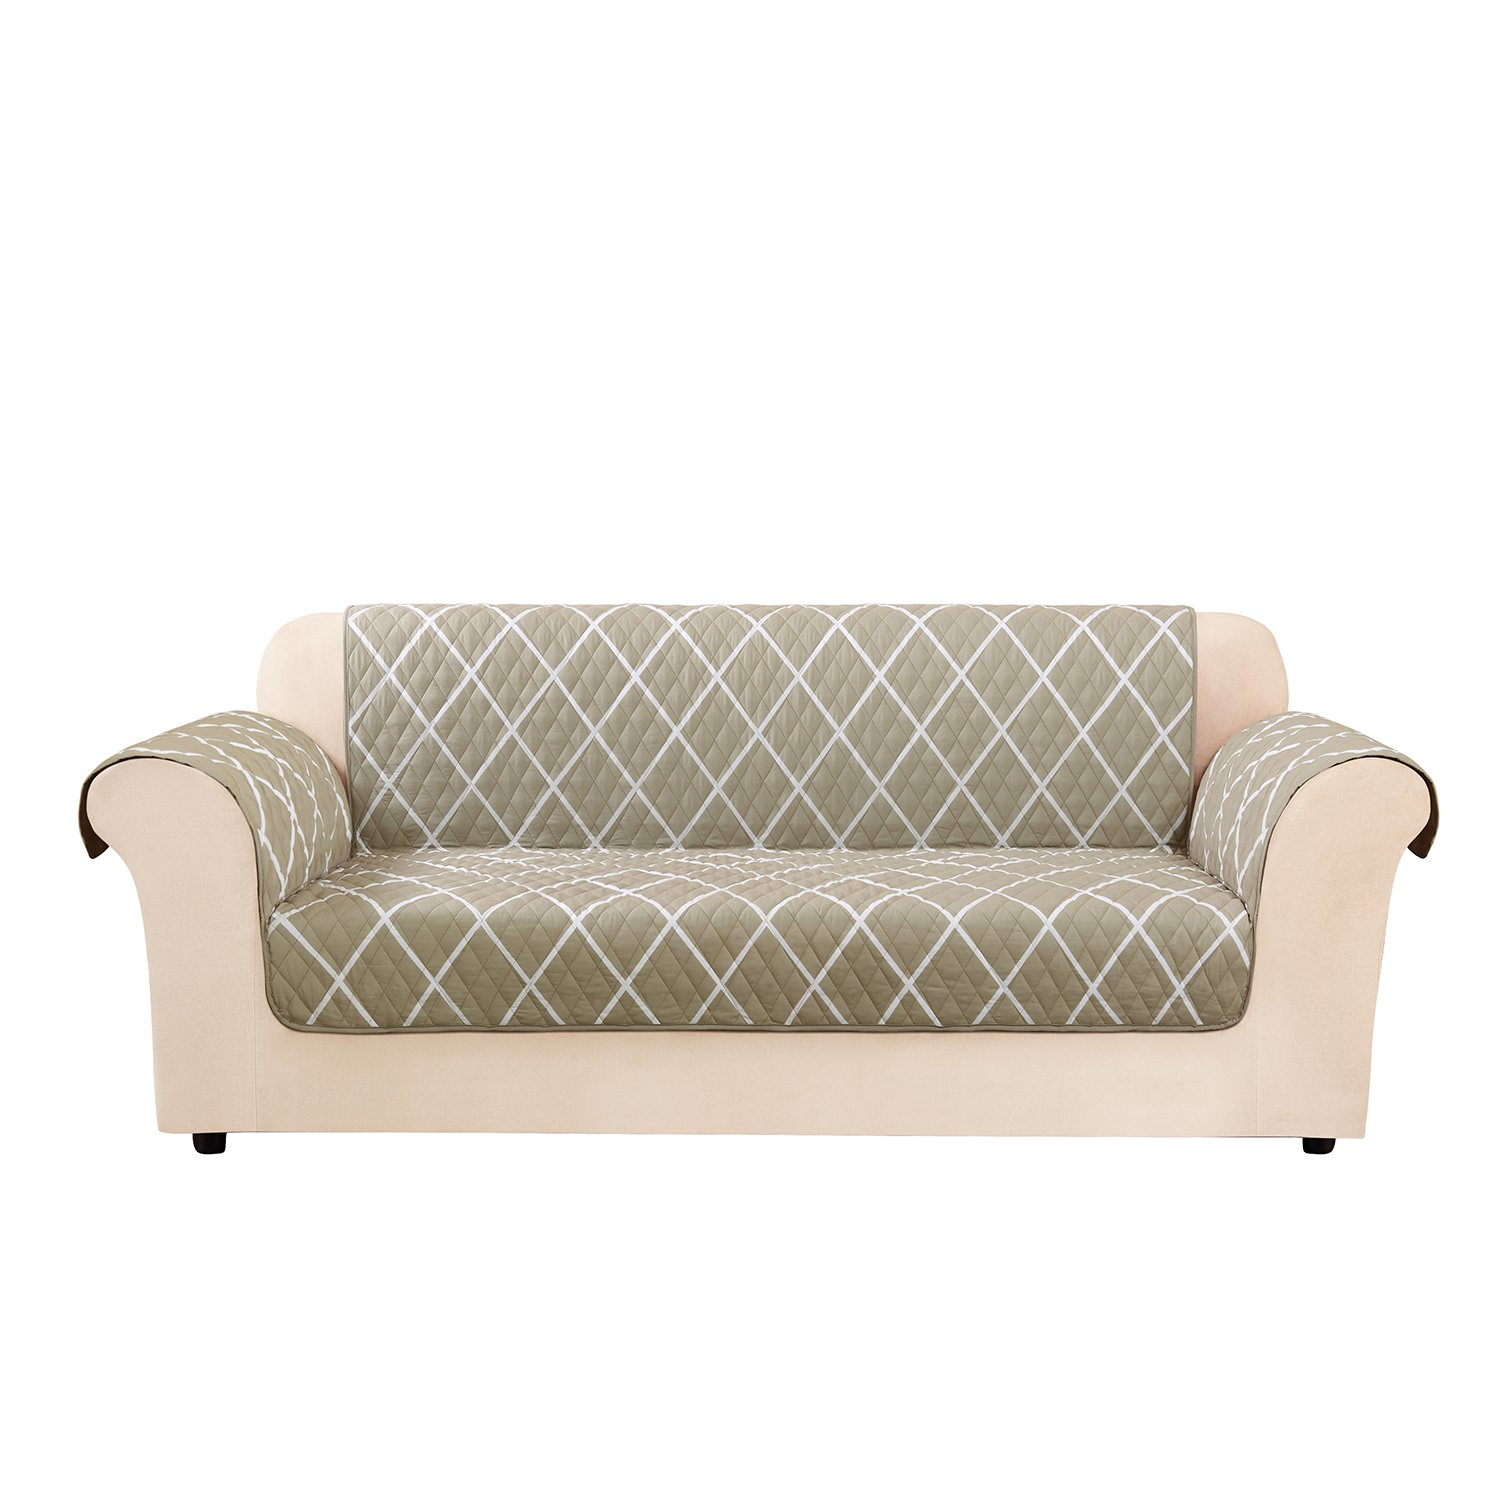 Amazon Sure Fit Furniture Flair Sofa Slipcover Lattice